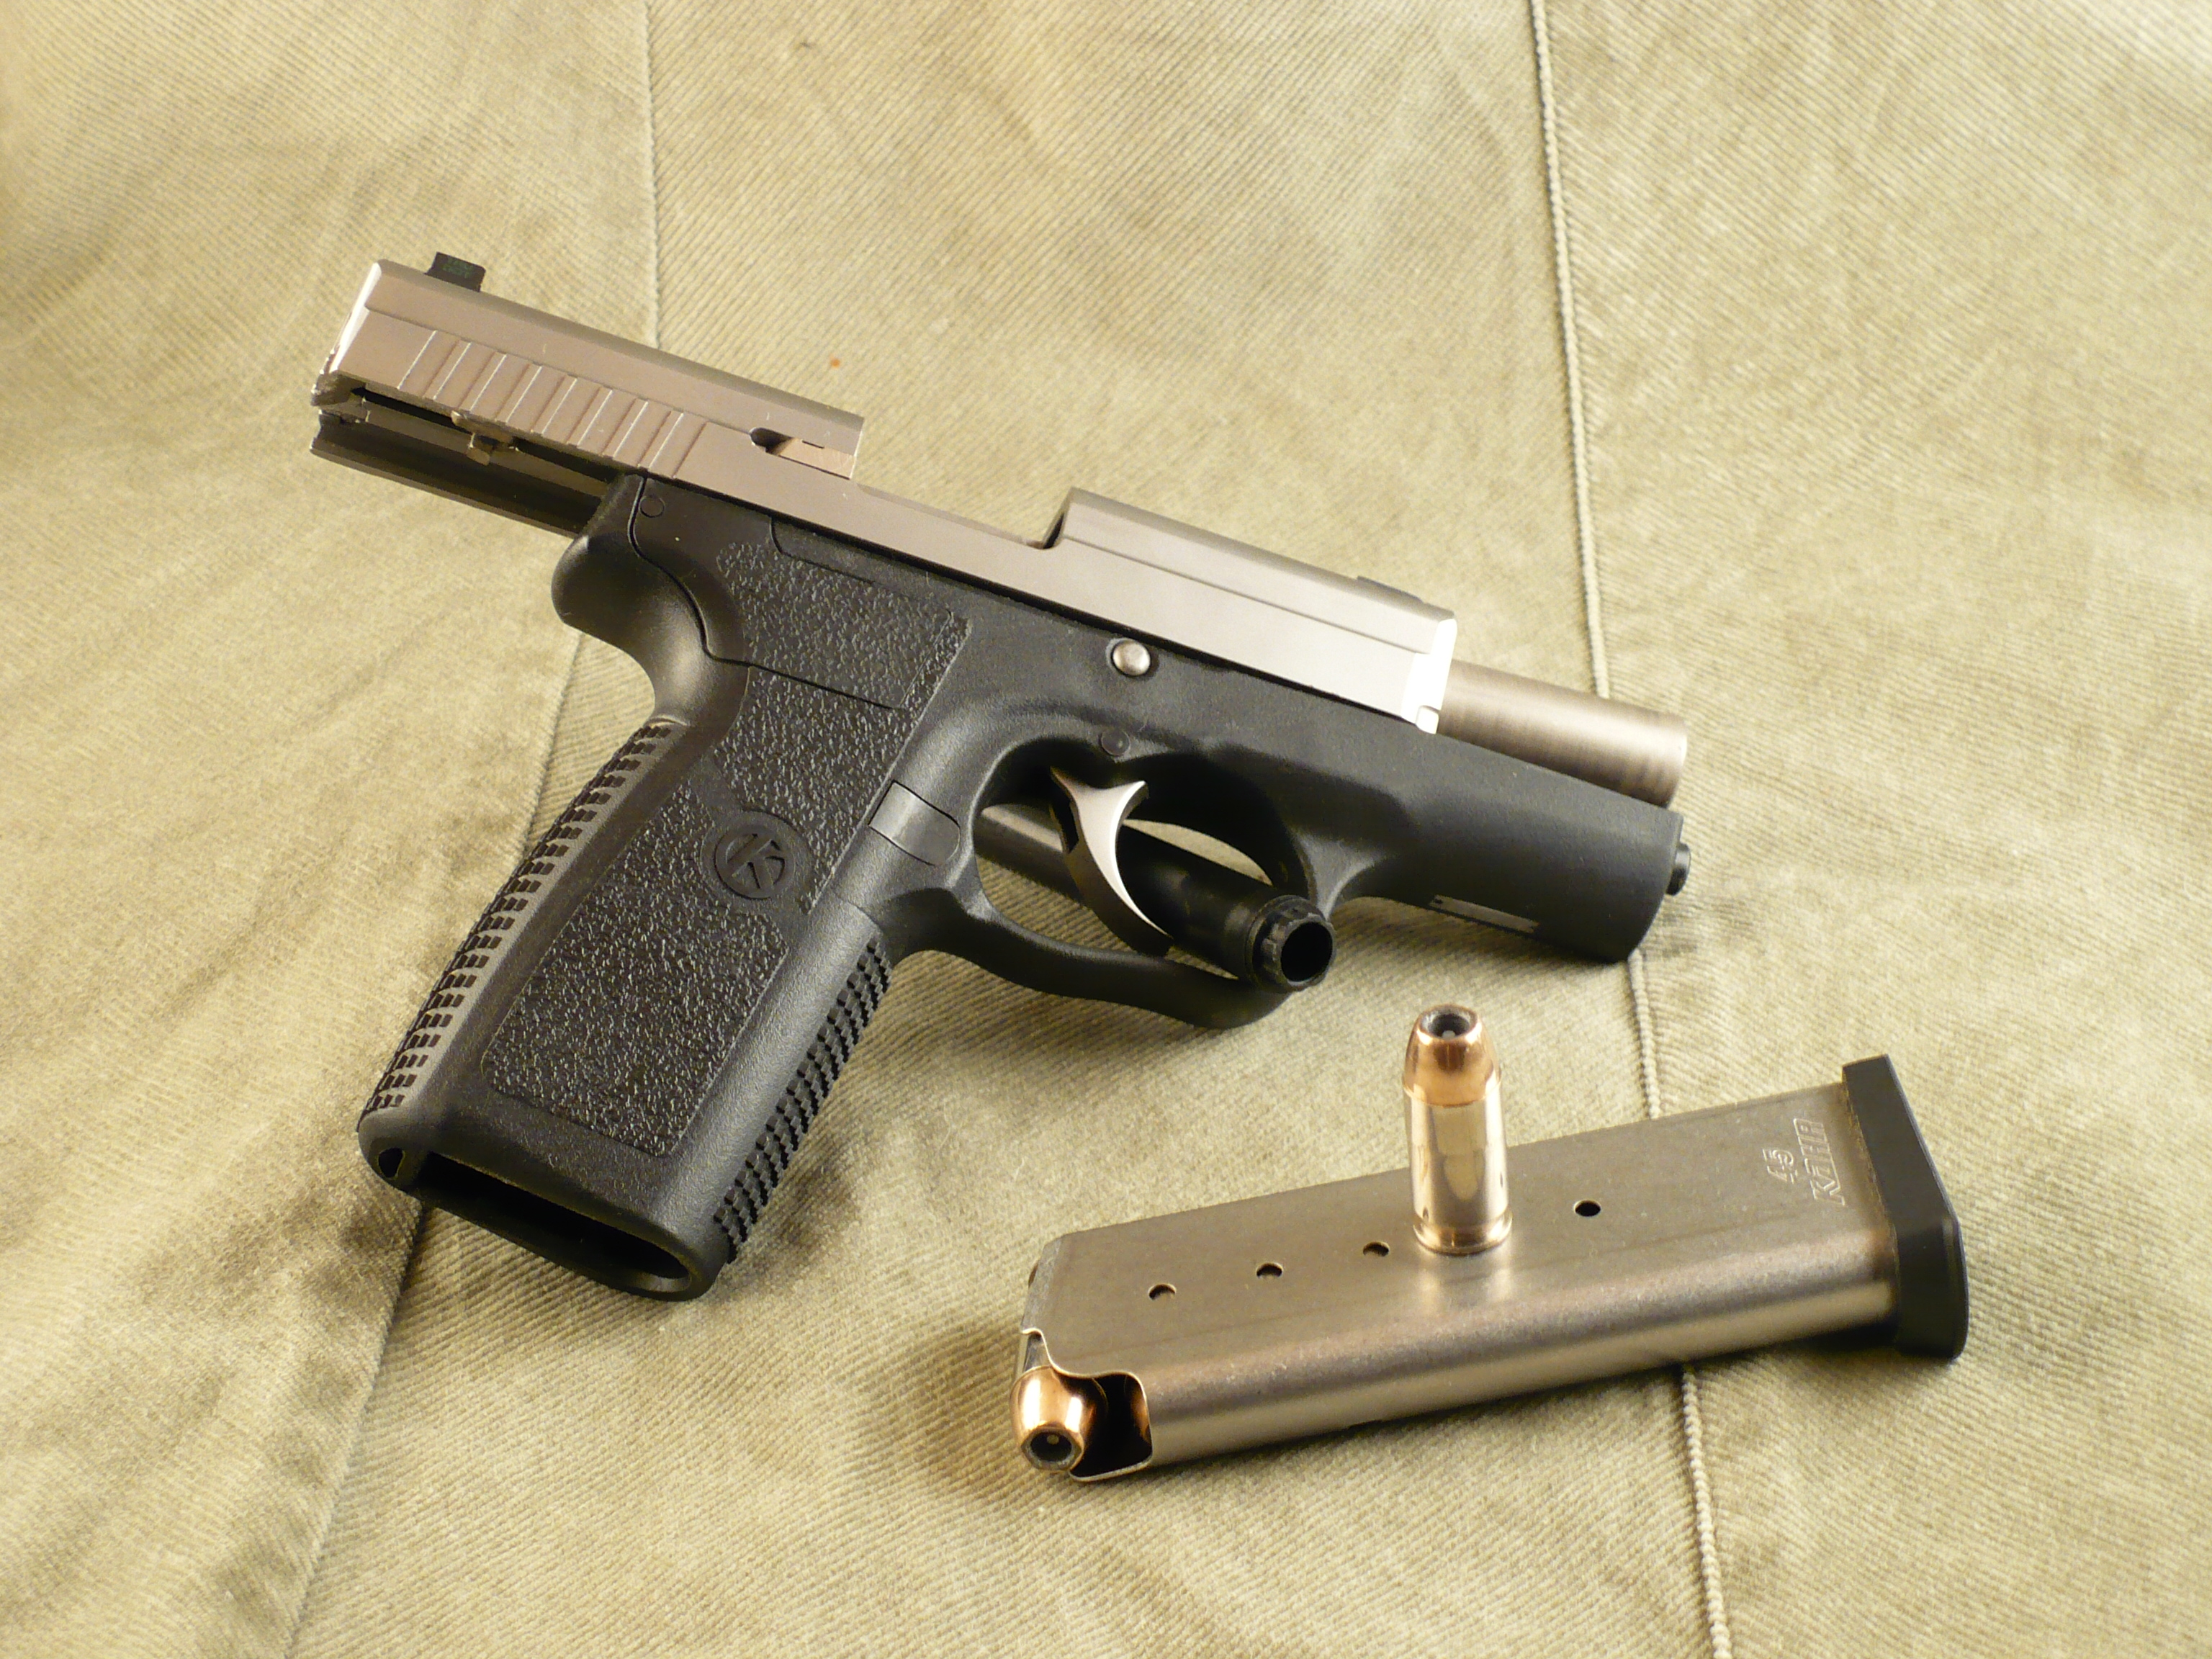 File:Kahr-arms p45 slide mag round-right JPG - Wikimedia Commons